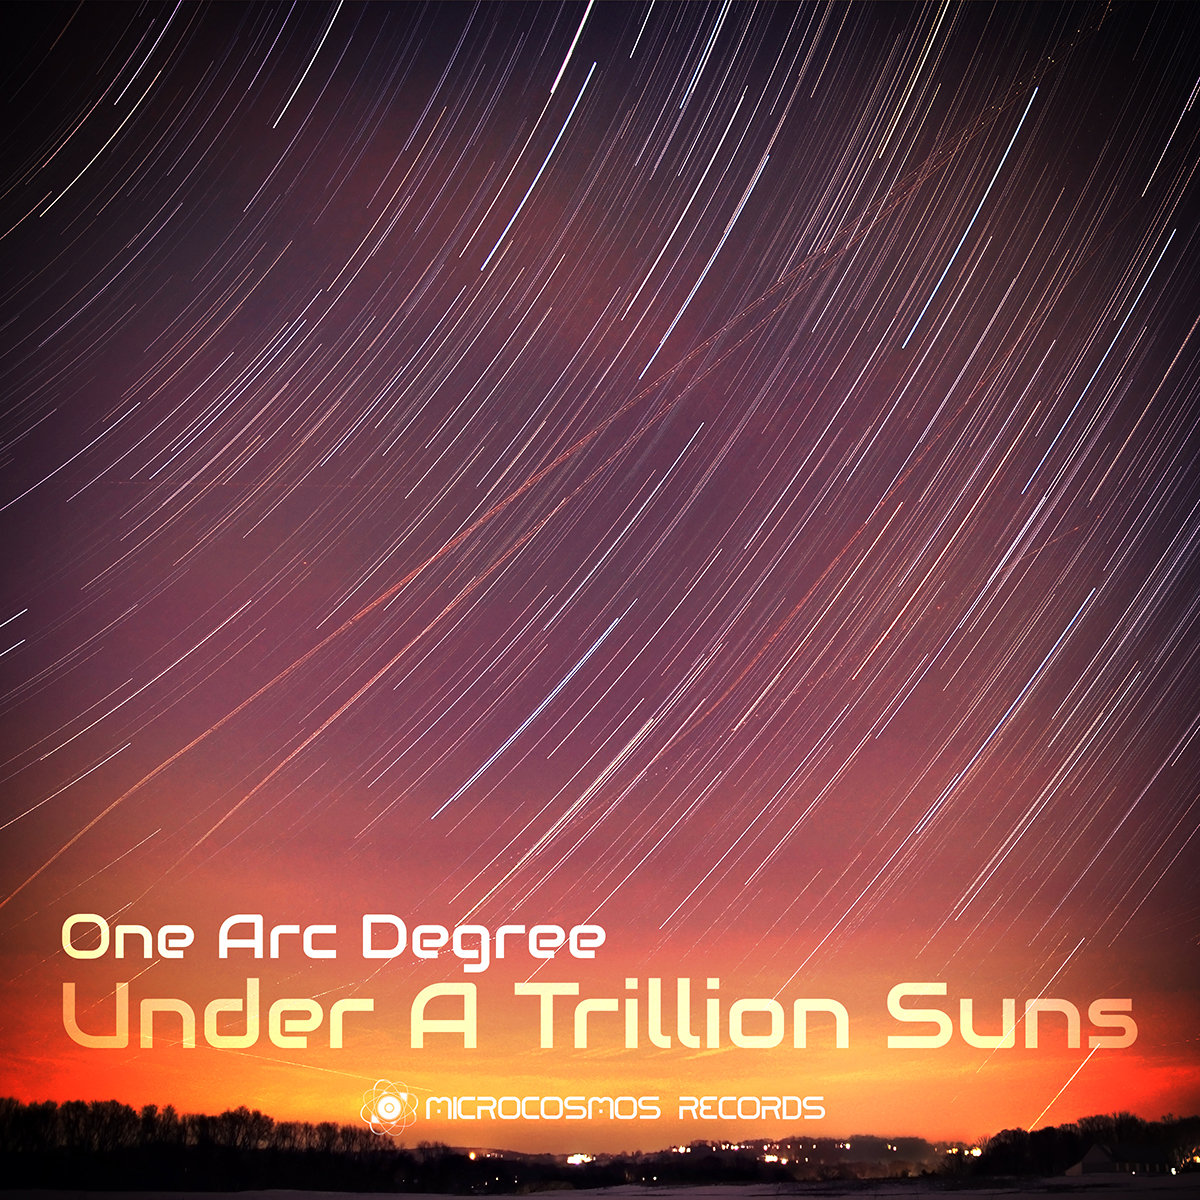 One Arc Degree - Under A Trillion Suns (artwork)